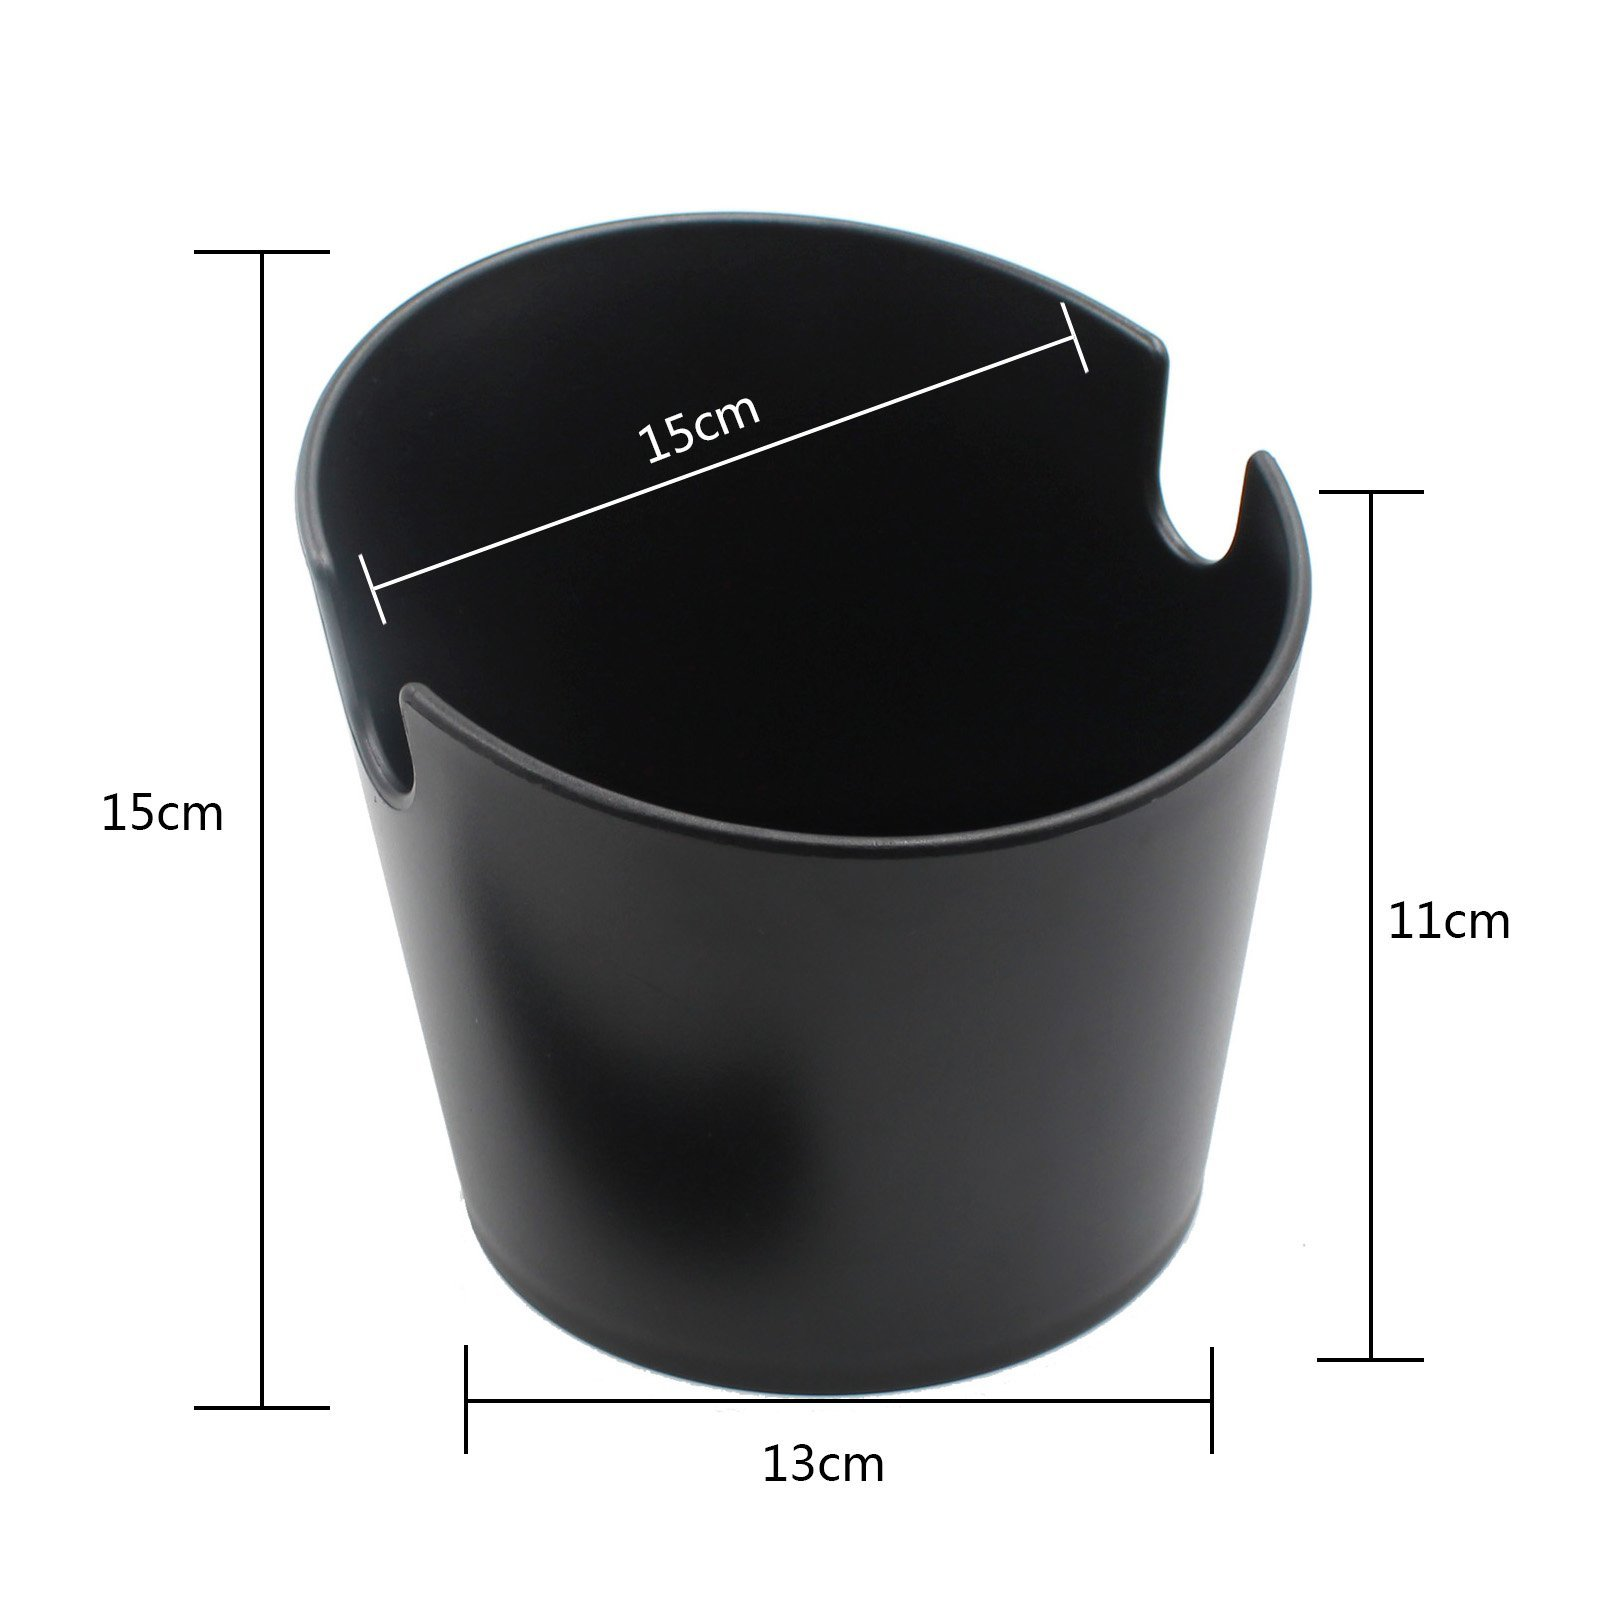 Yolococa Espresso Coffee Knock Box Container for coffee ground Black